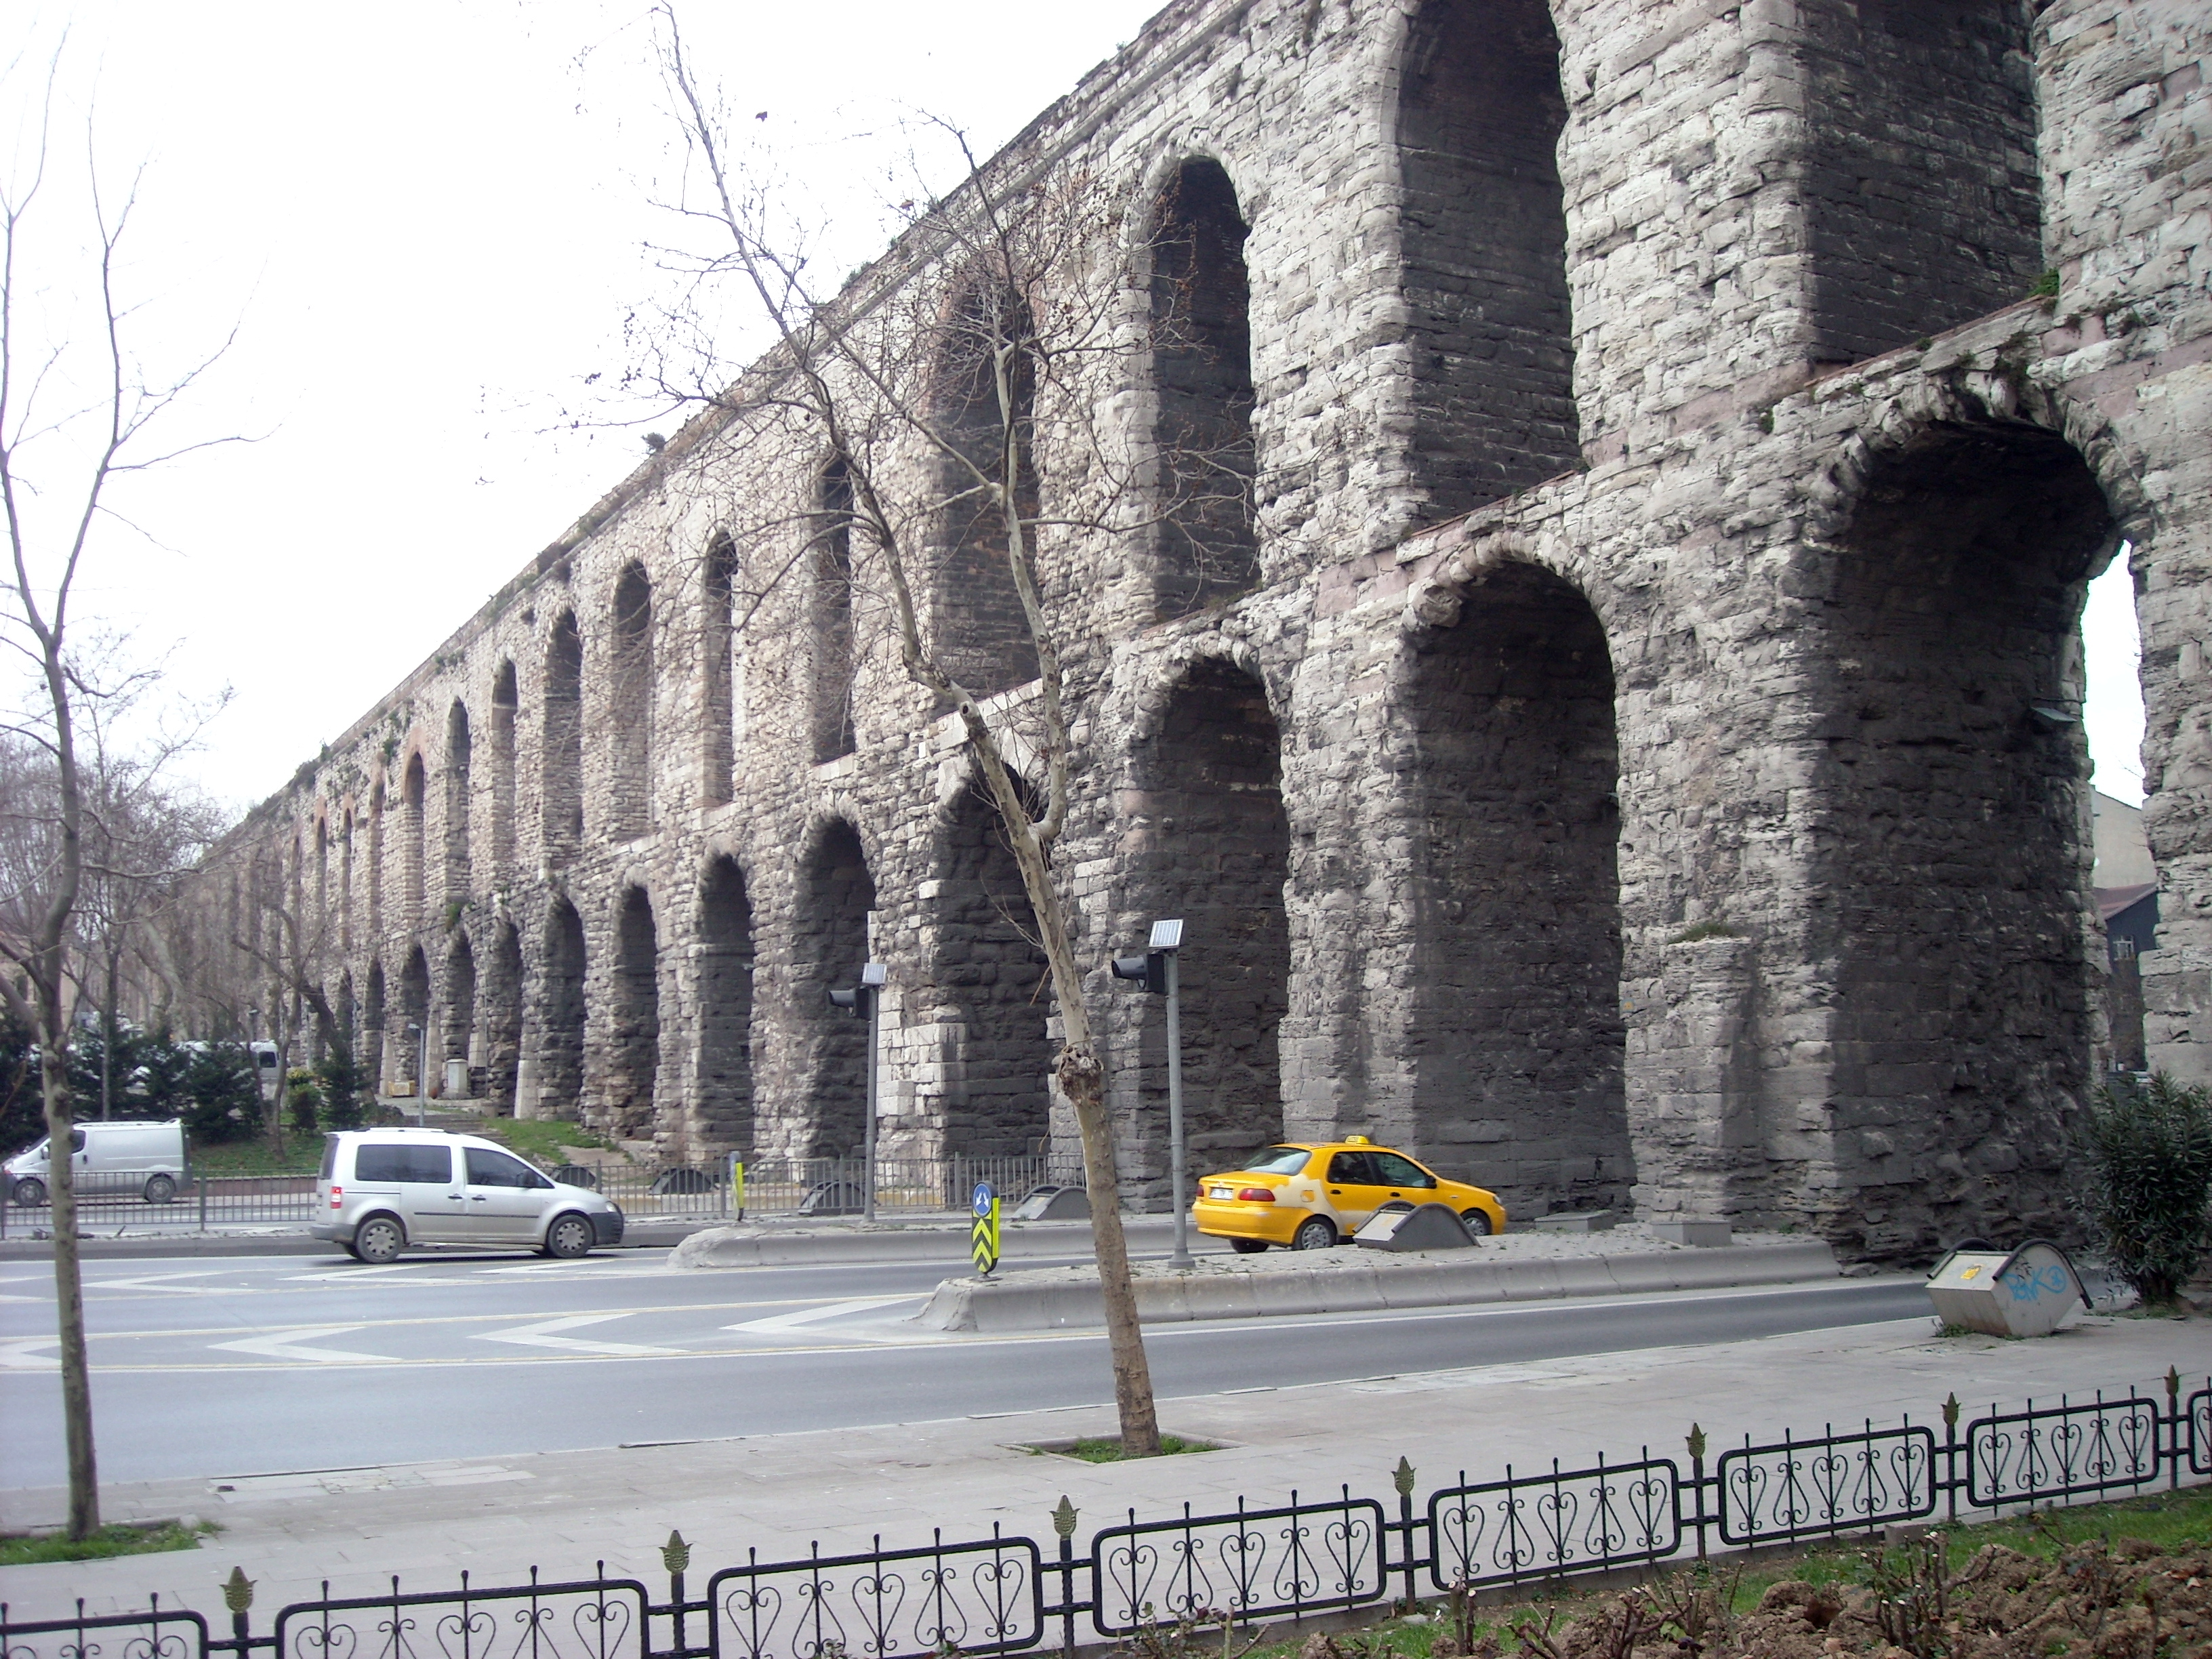 The Valens Aqueducts